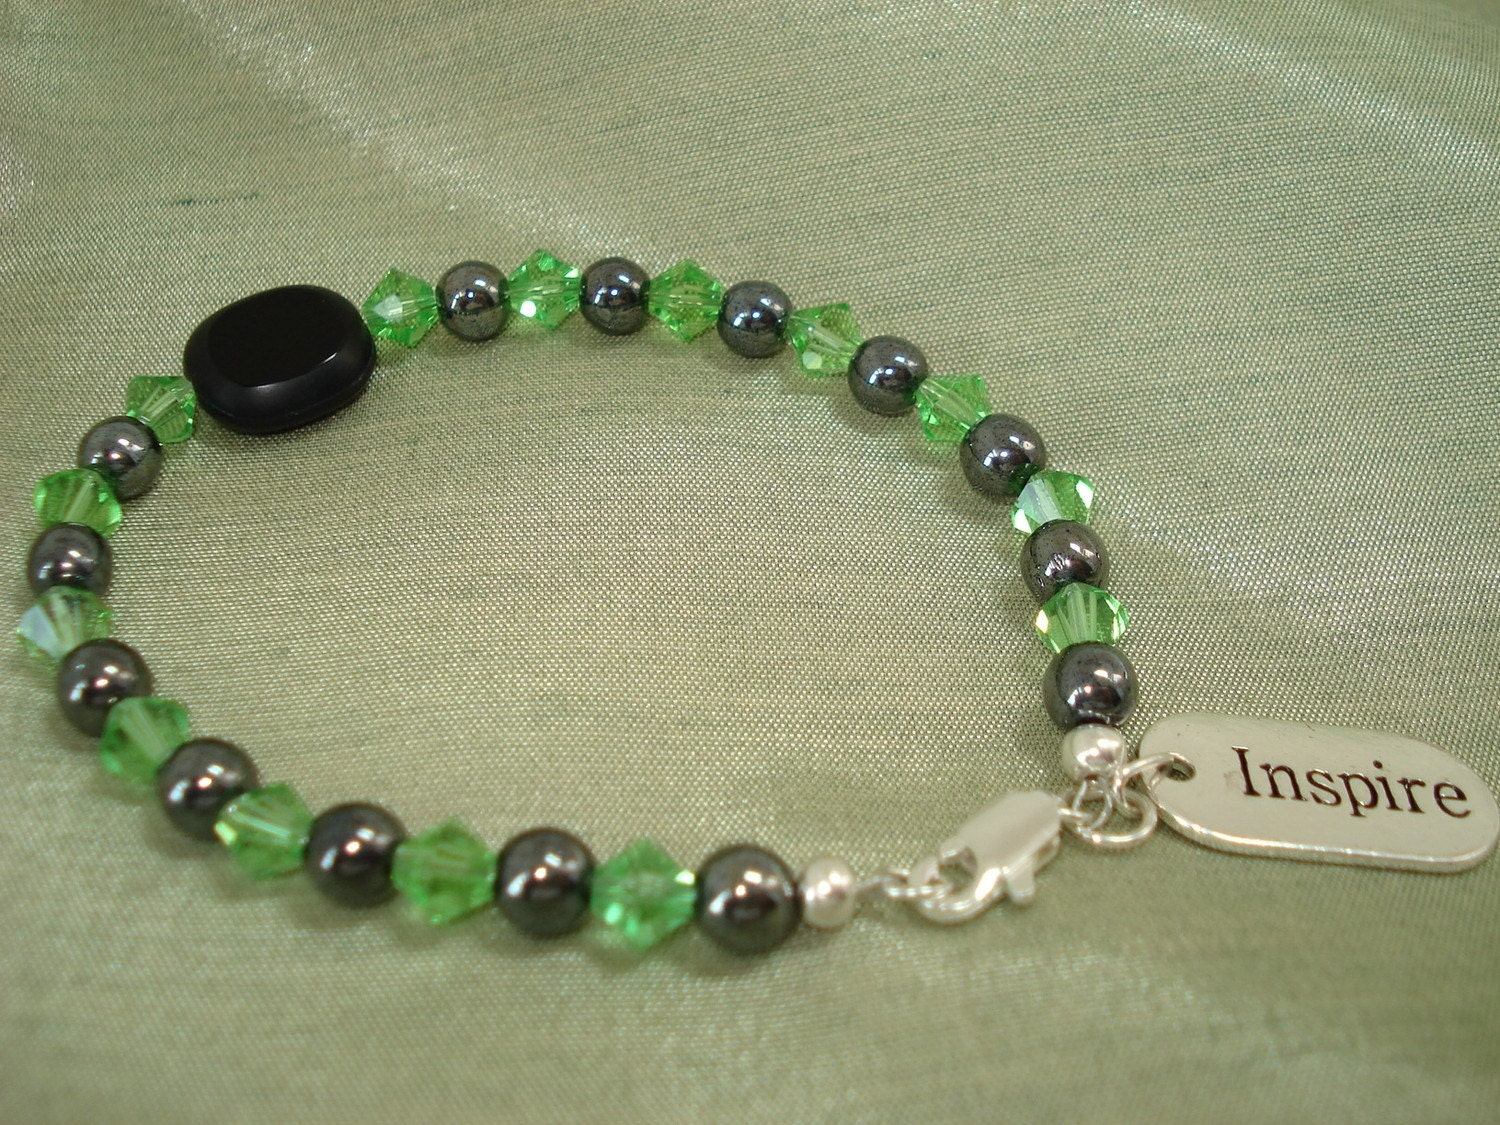 Inspire Green and Black Beaded Bracelet